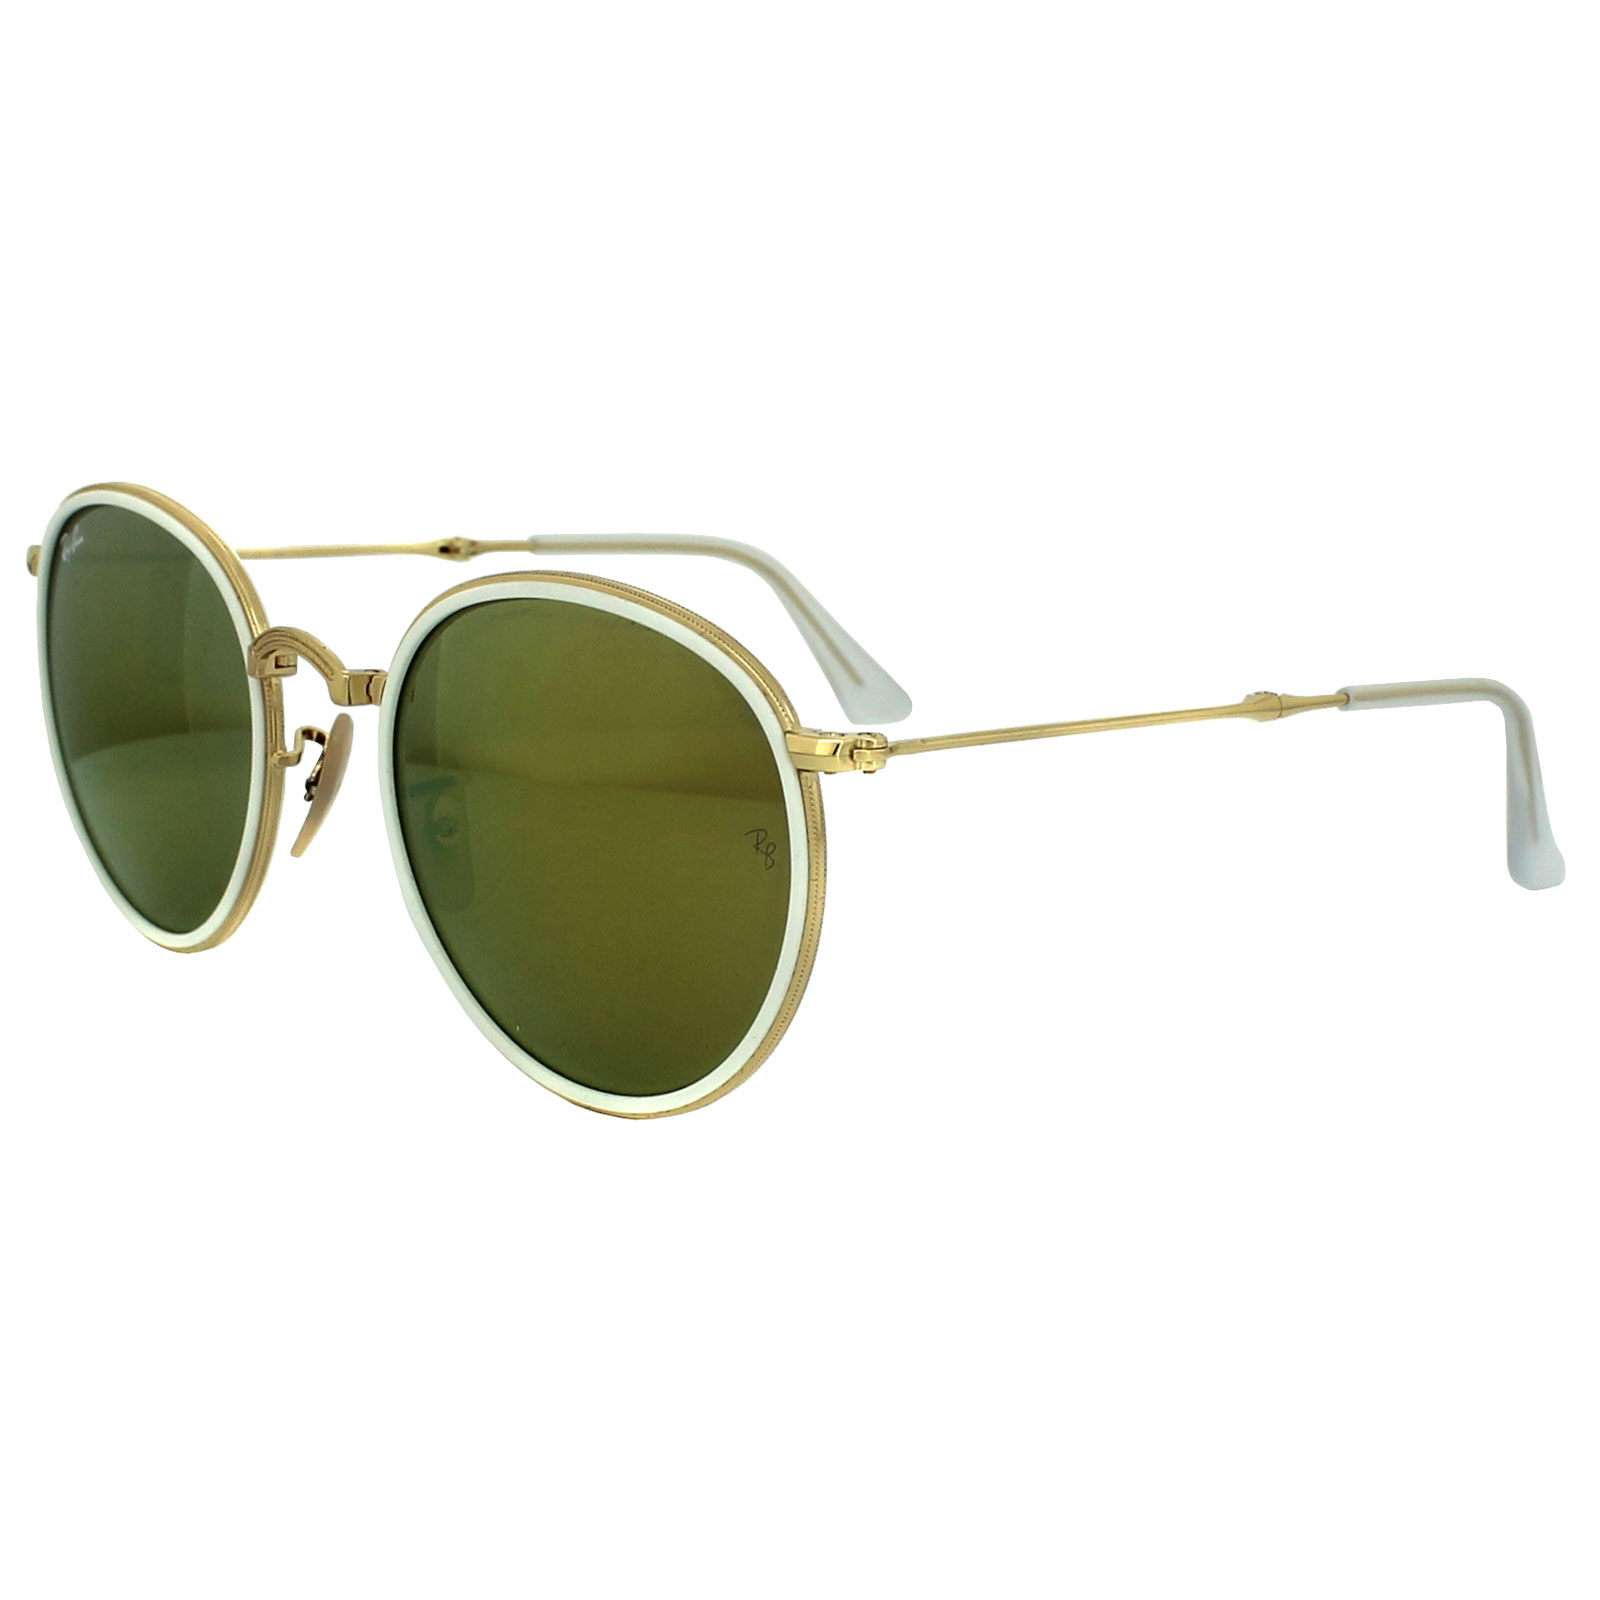 ray ban round folding frame sunglasses  ray ban sunglasses round folding 3517 001/93 gold & white yellow mirror